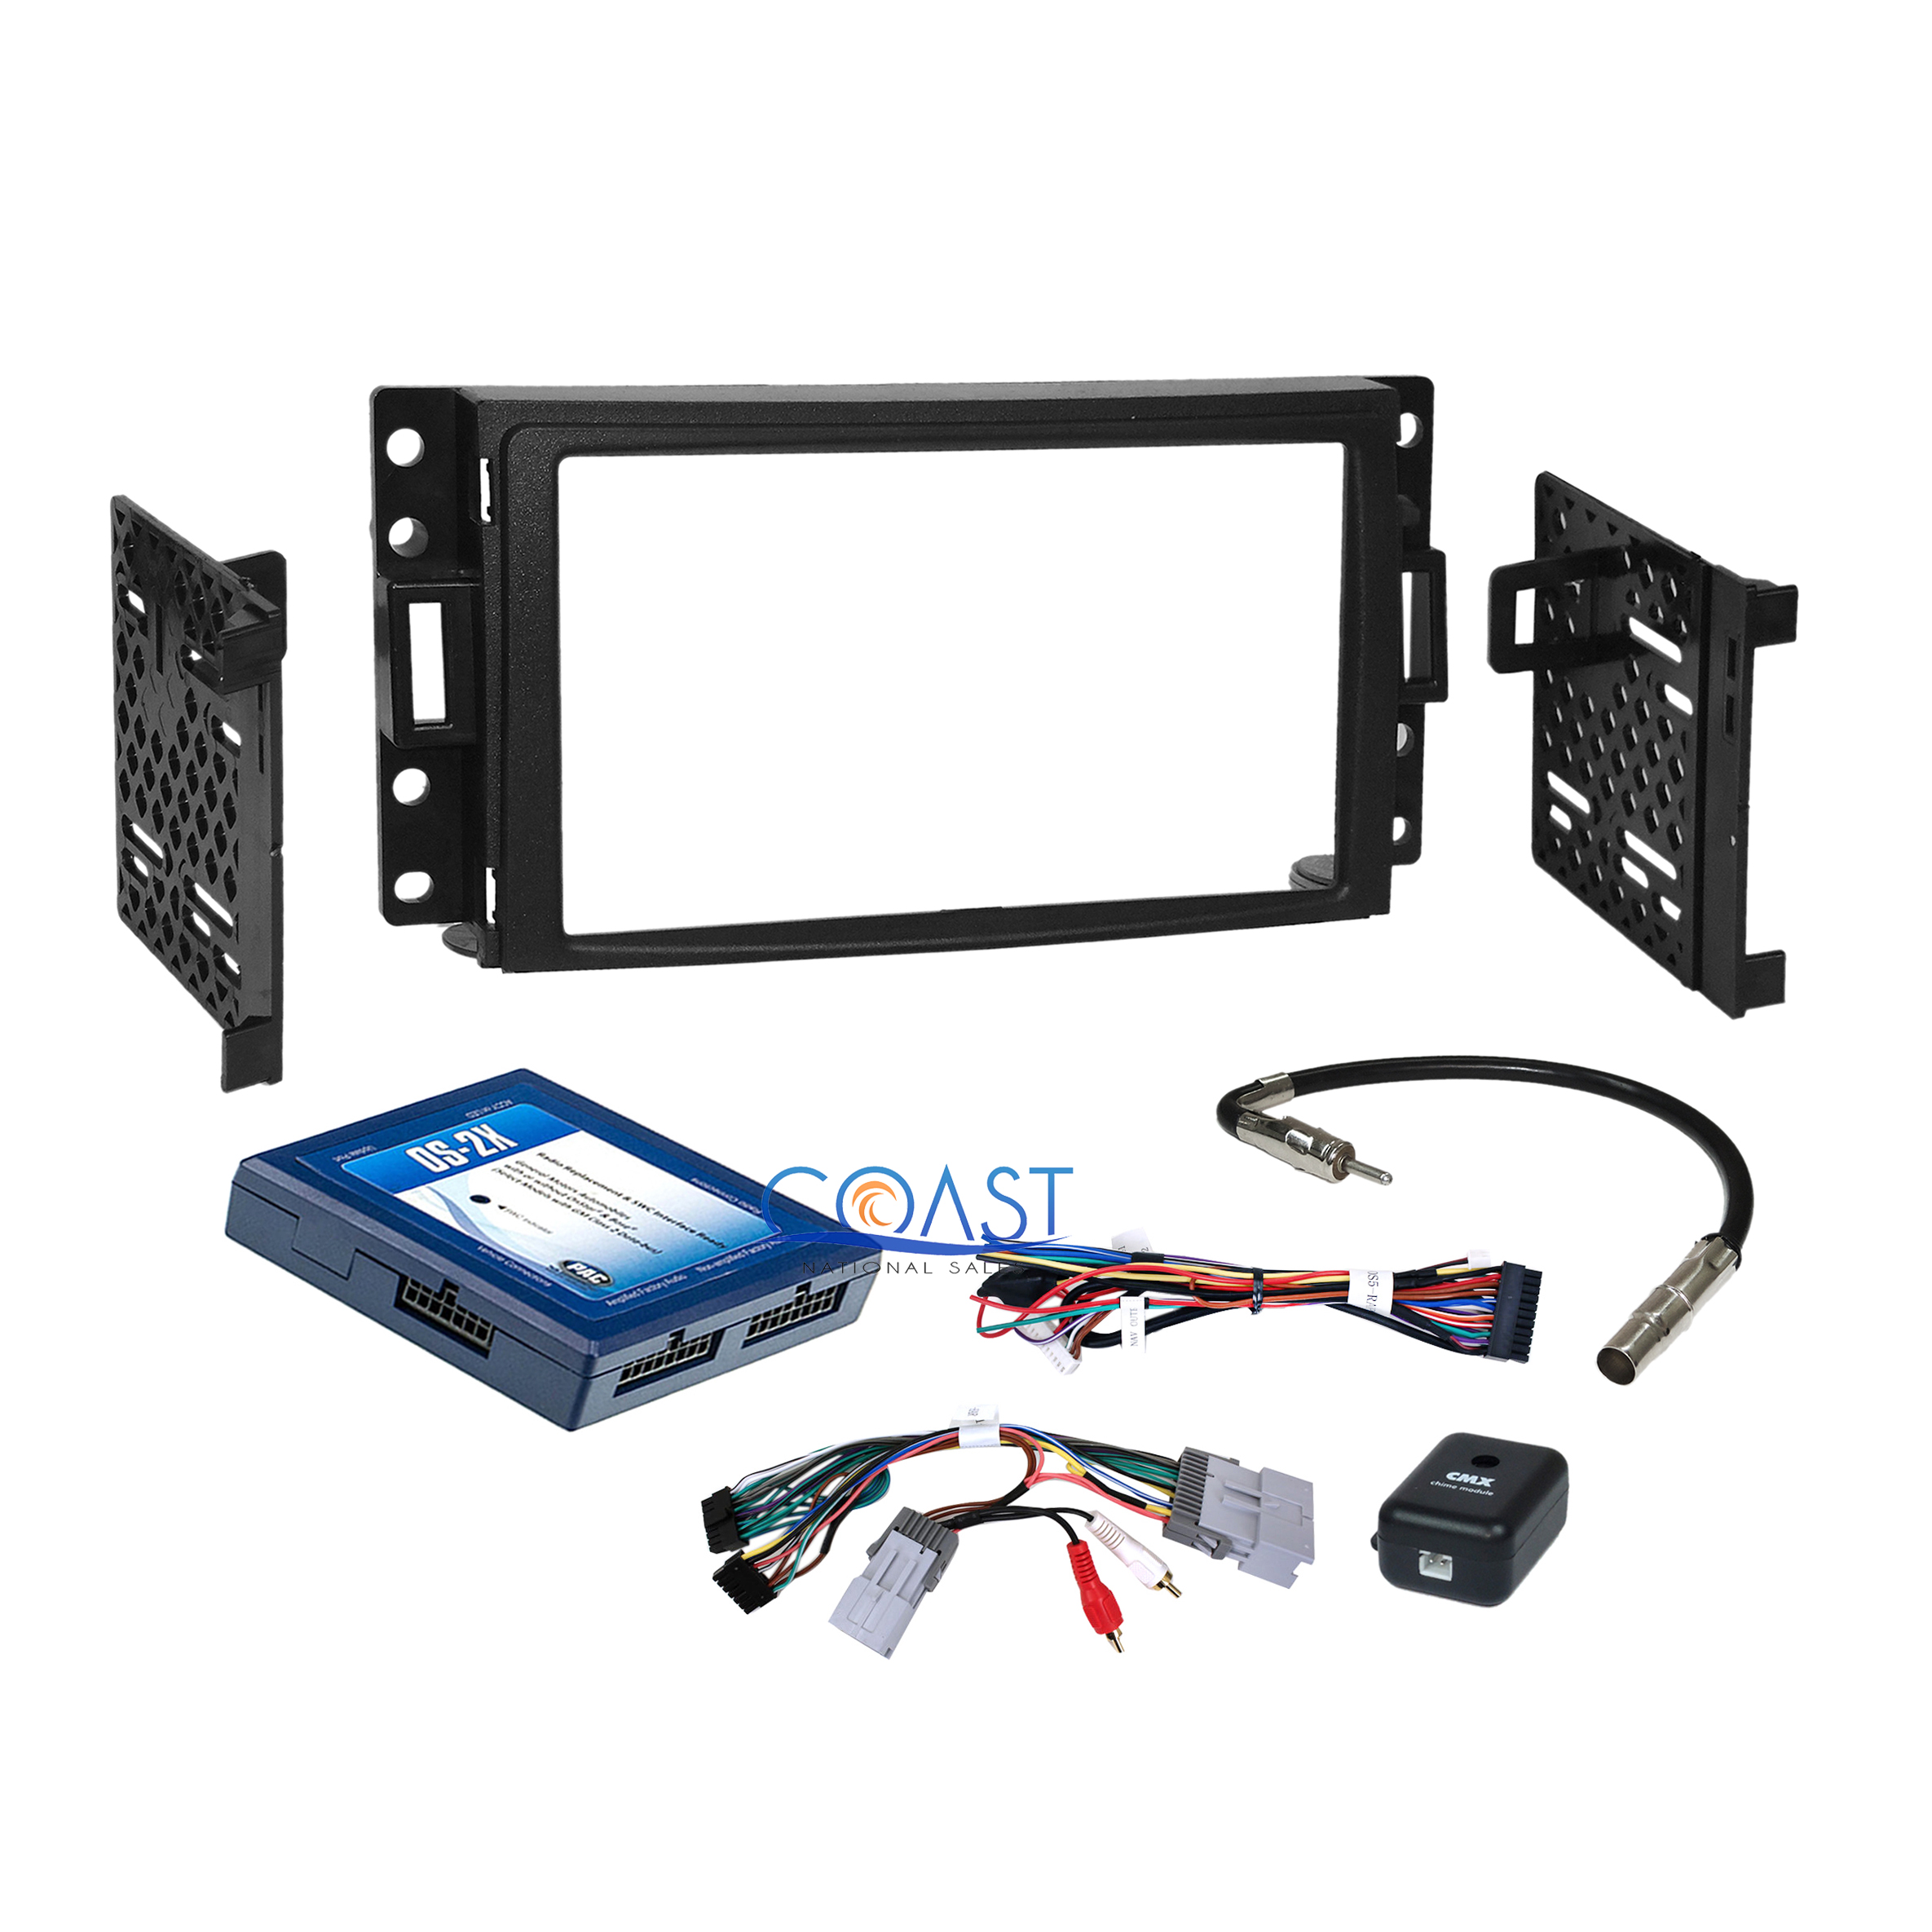 Details about Car Stereo 2DIN Dash Kit Bose Onstar Harness for 05+ Chevy  Buick Pontiac Saturn